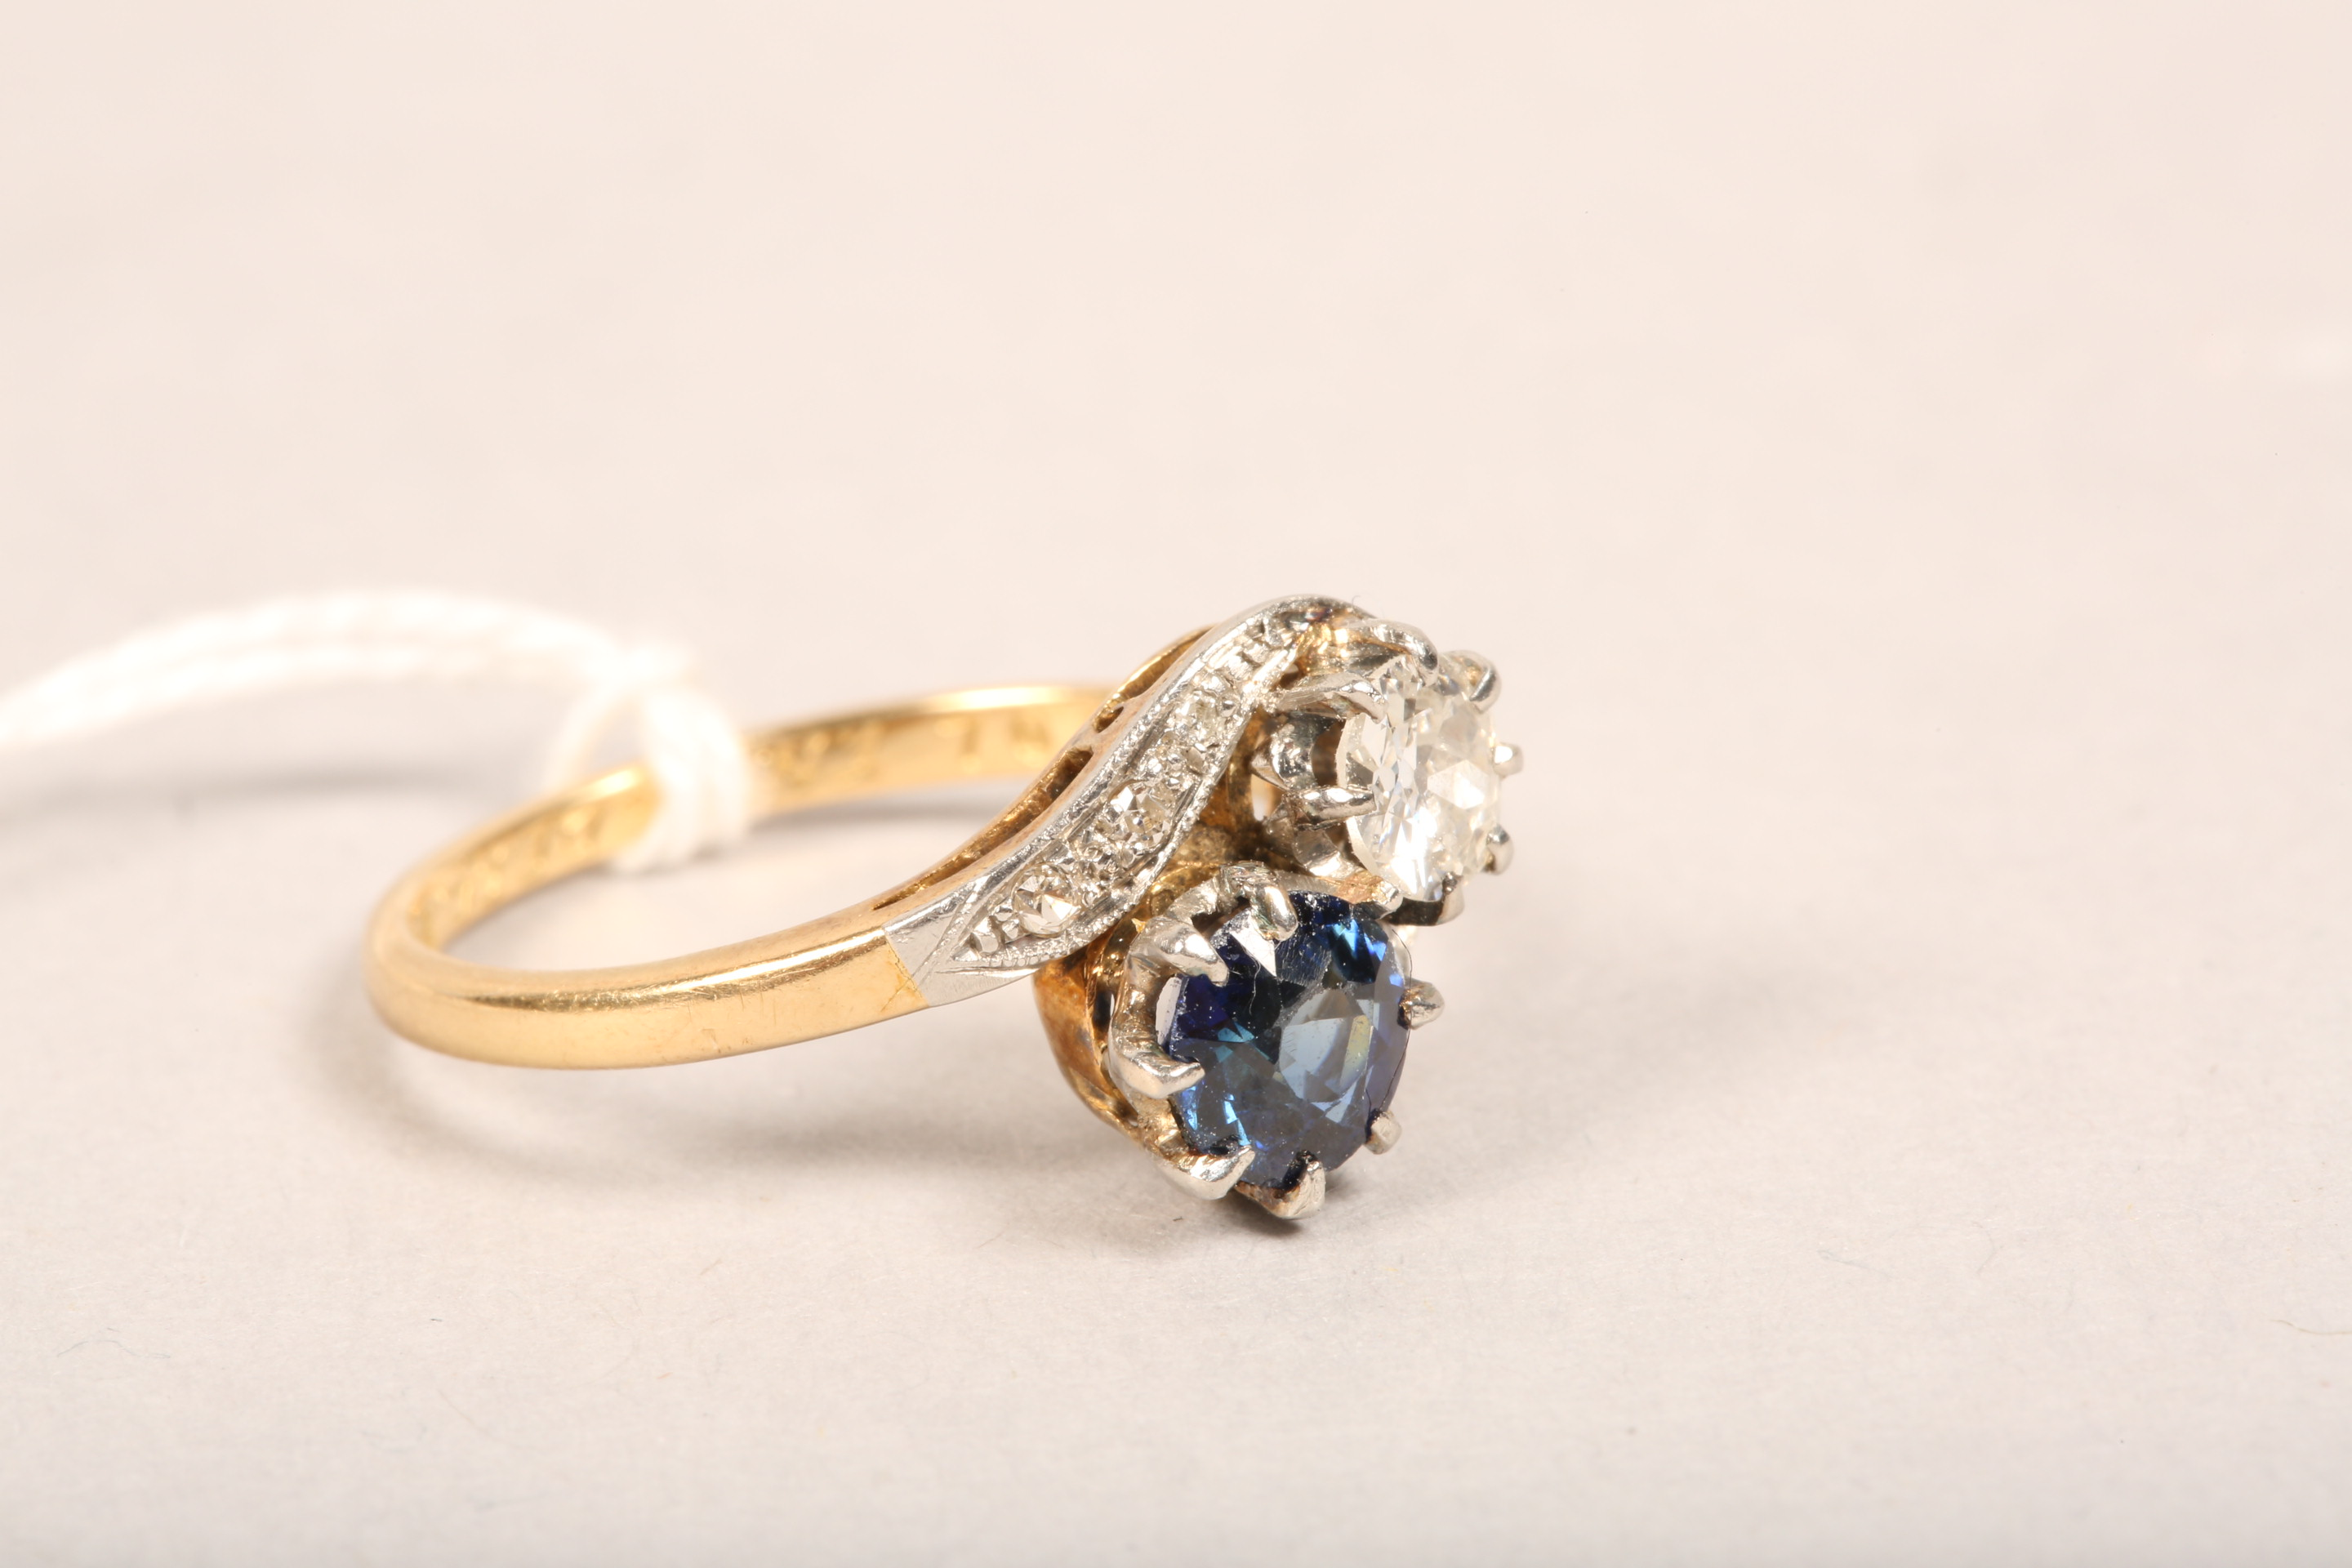 Ladies 18 carat gold diamond and sapphire ring, 0.33 diamond and 0.5 sapphire in twist setting, - Image 2 of 8